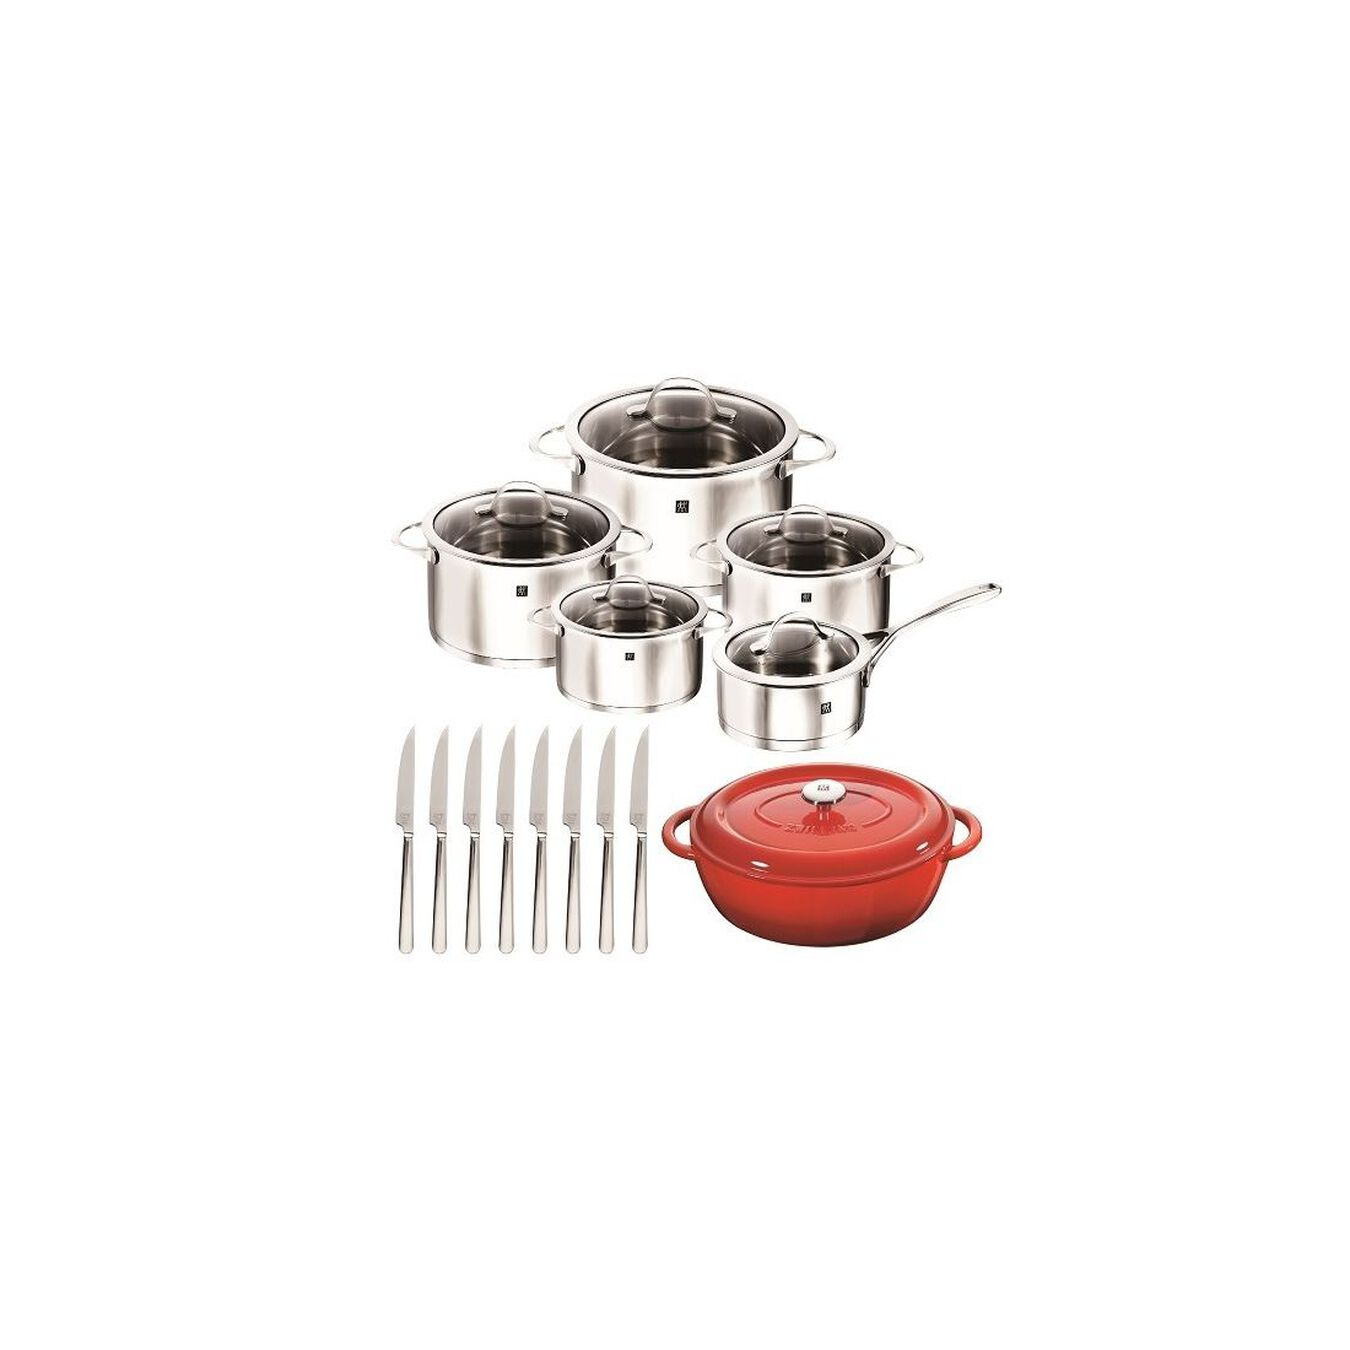 Pot set, 10 Piece   round   18/10 Stainless Steel,,large 2